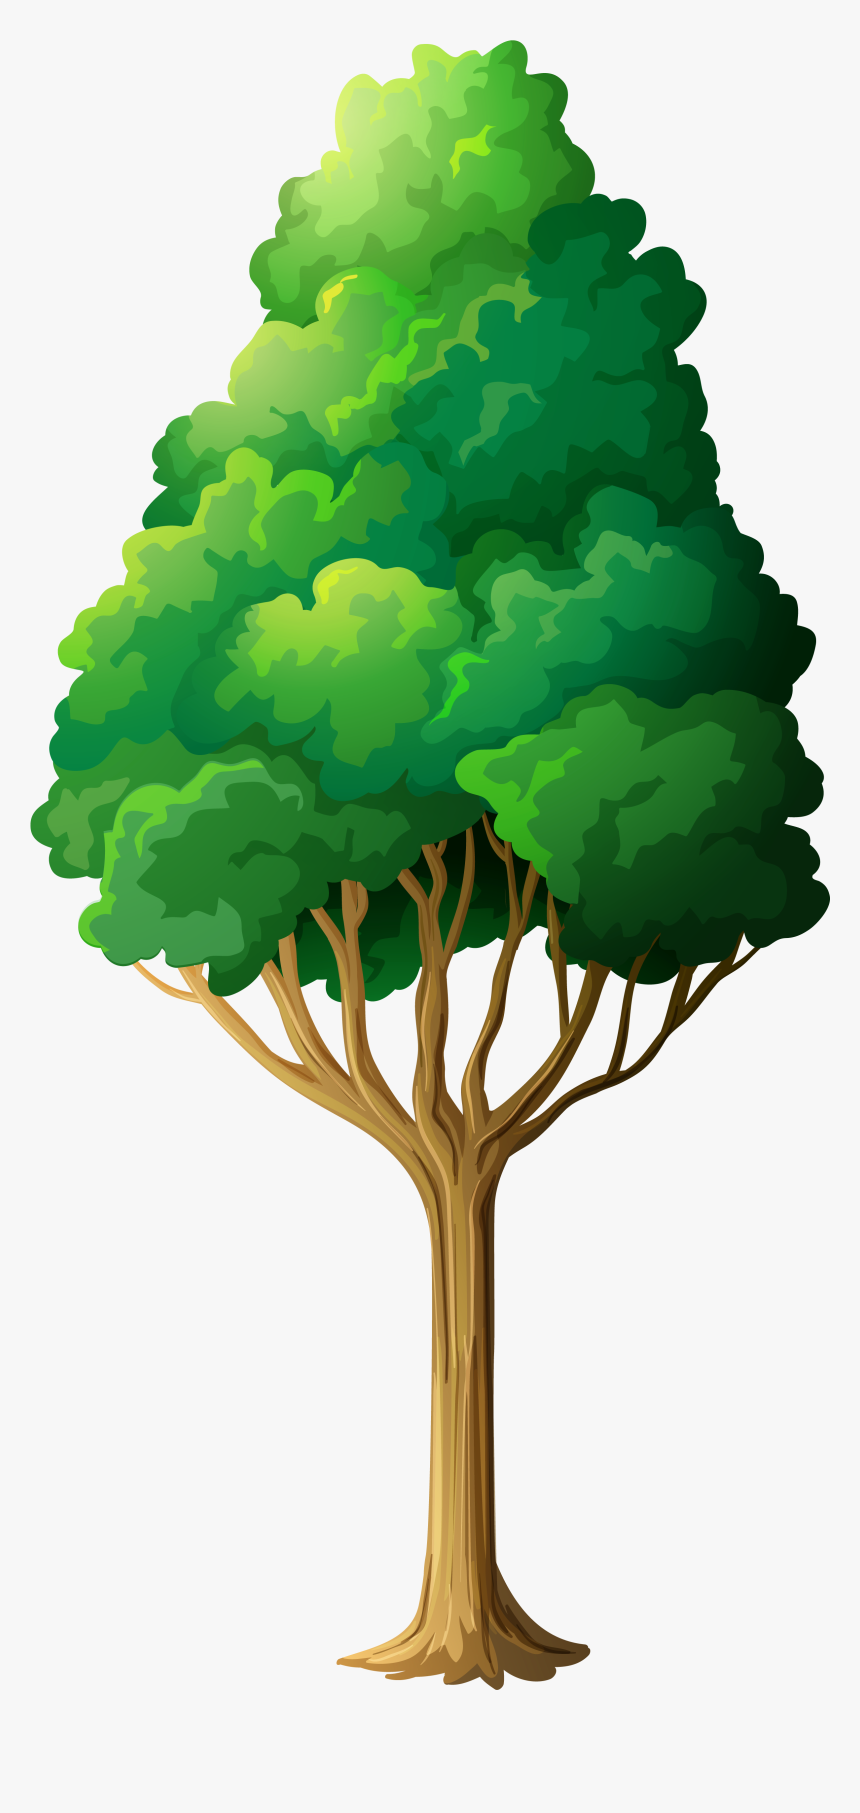 Tree Clipart - Frog Under The Tree, HD Png Download, Free Download